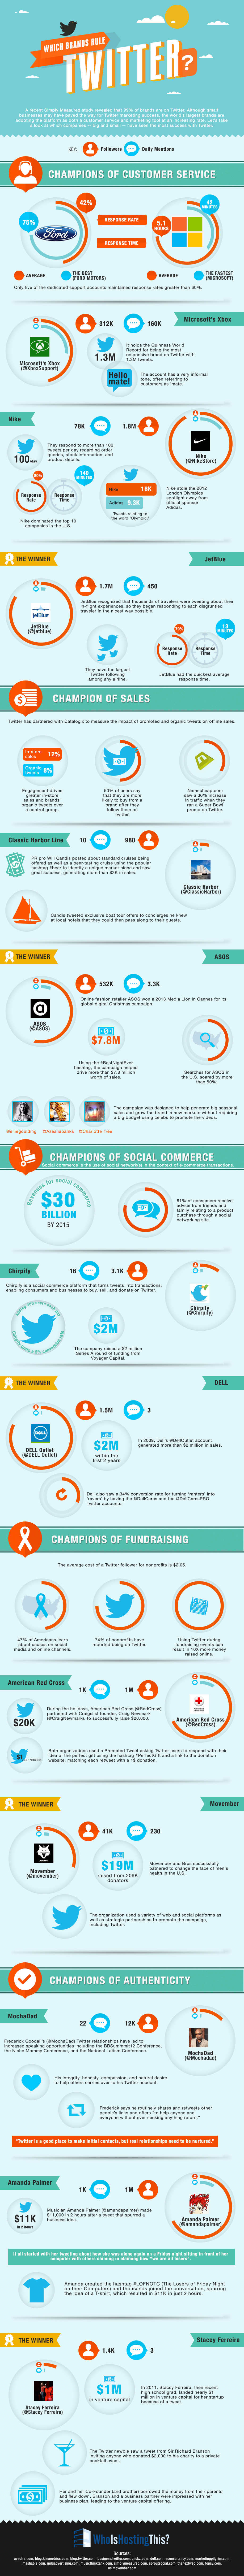 Using Twitter to Get Ahead: Which Brand Rule Twitter? [Infographics]